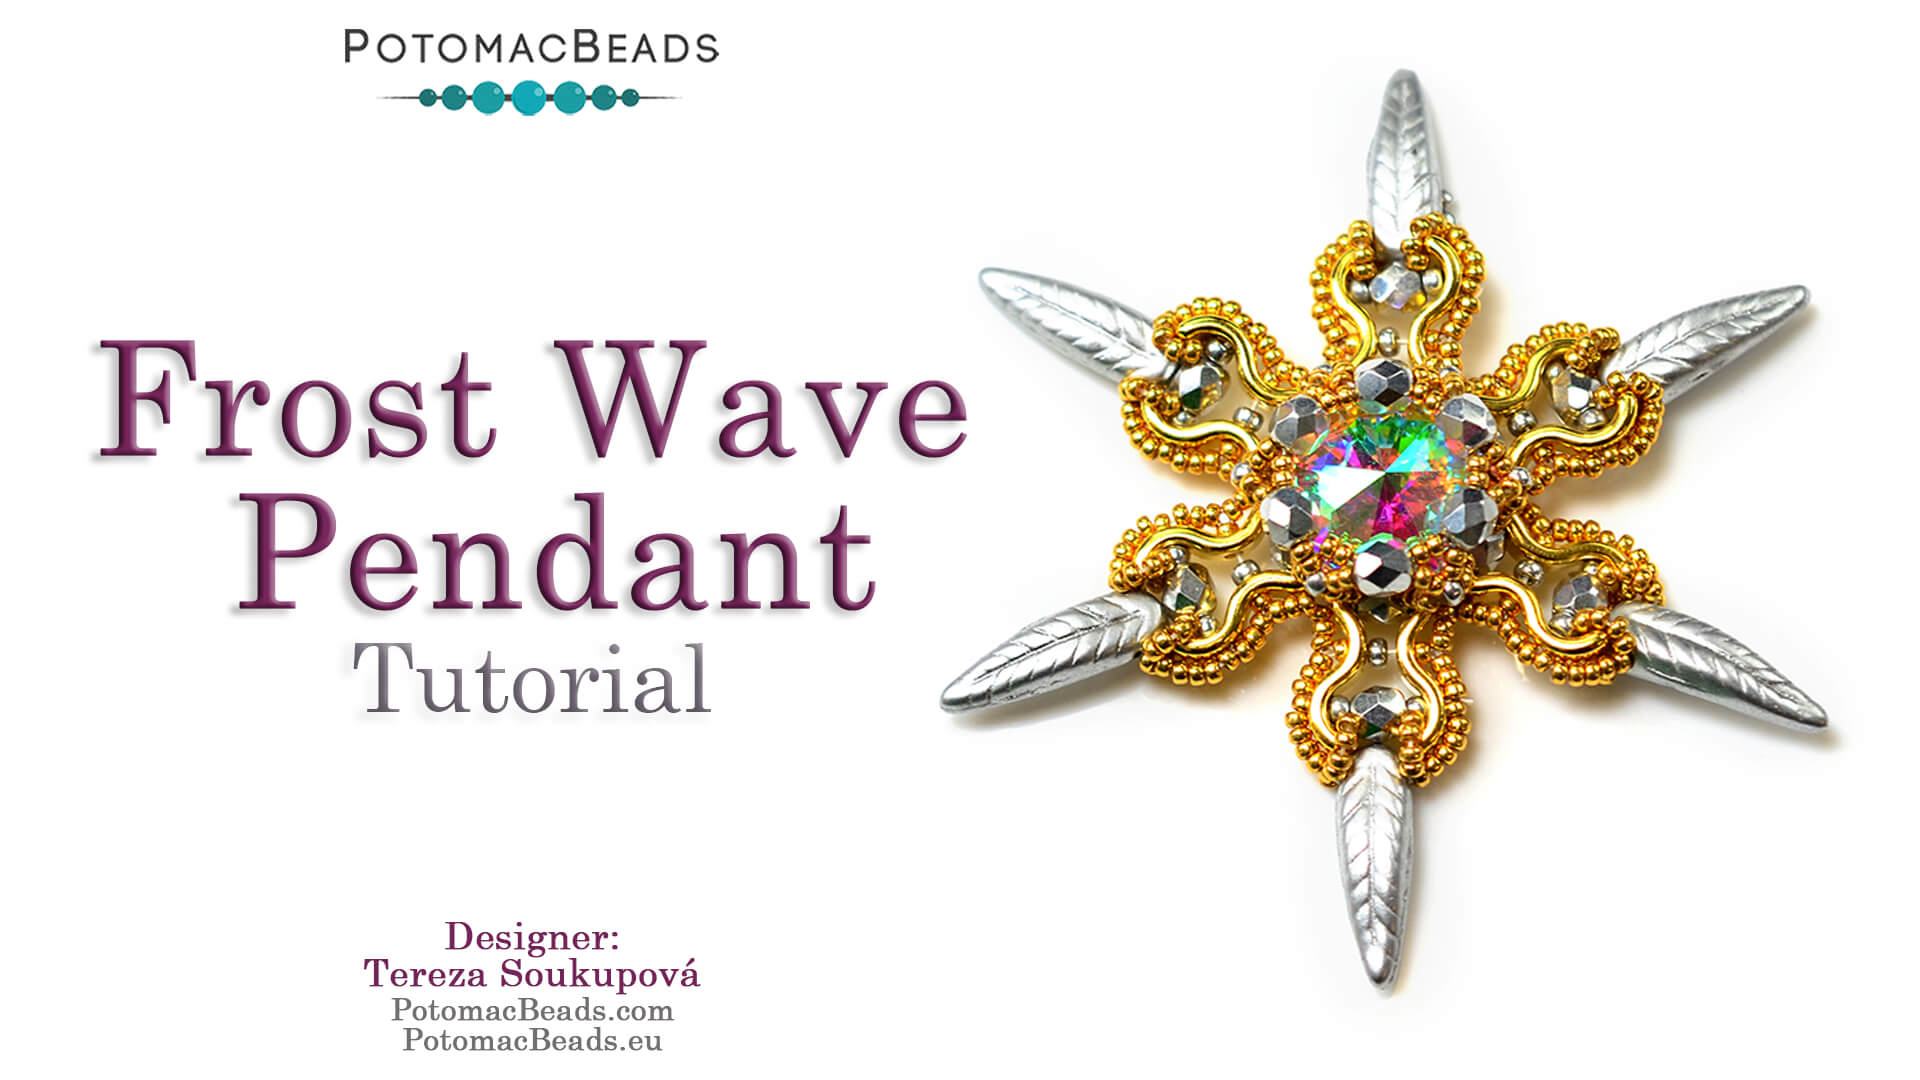 How to Bead Jewelry / Videos Sorted by Beads / Potomax Metal Bead Videos / Frost Wave Pendant Tutorial